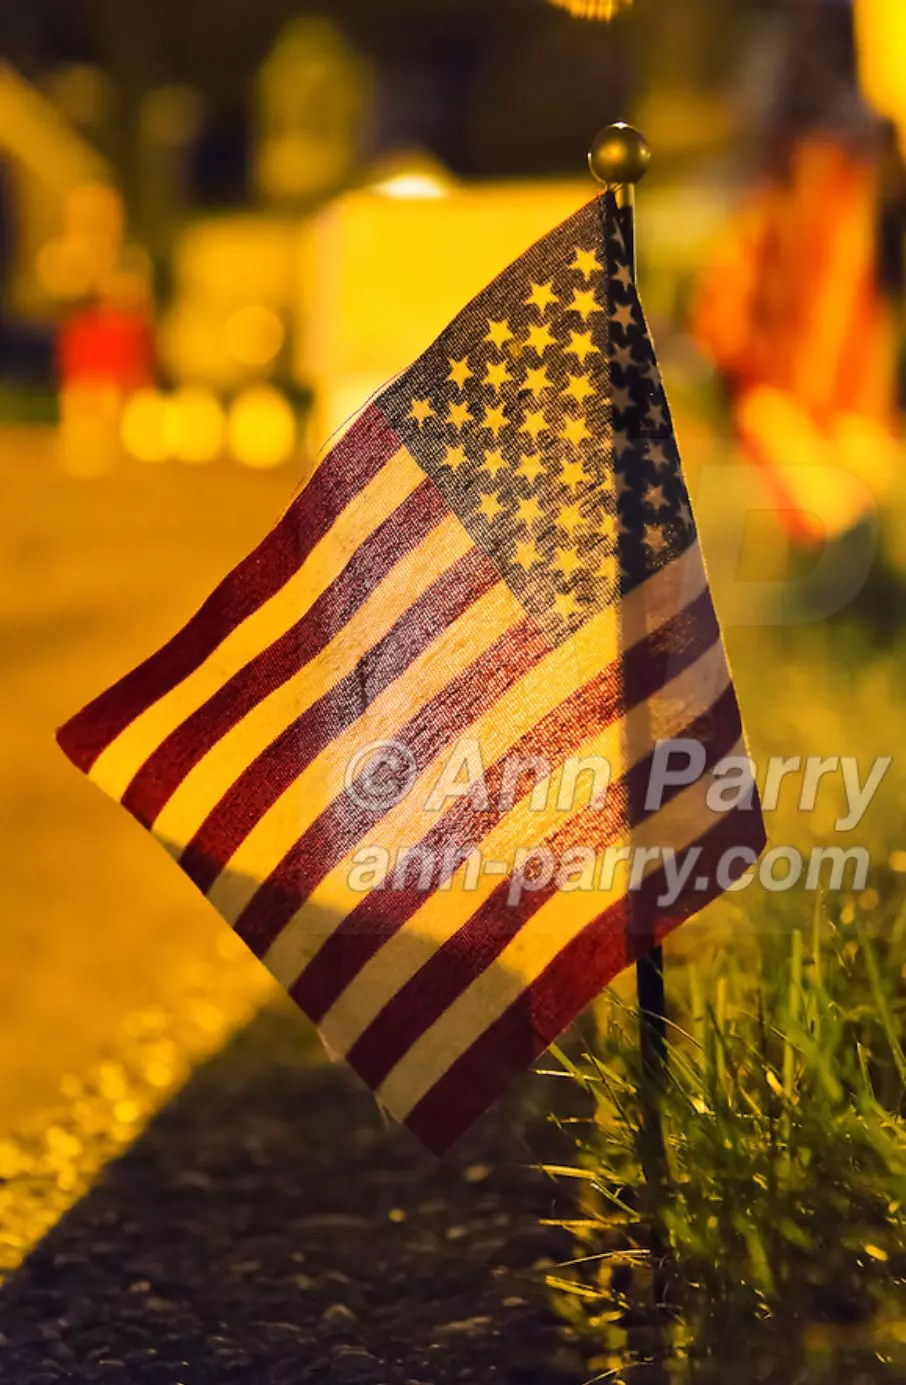 Merrick, NY USA. Sept. 11, 2012. 500 Luminary Bags placed in front of all 215 Wenshaw Park homes on 11th Anniversary of 9/11, by Wenshaw Park Civic Association (WPCA), Long Island, with over $500 already raised for Twin Towers Orphan Fund.